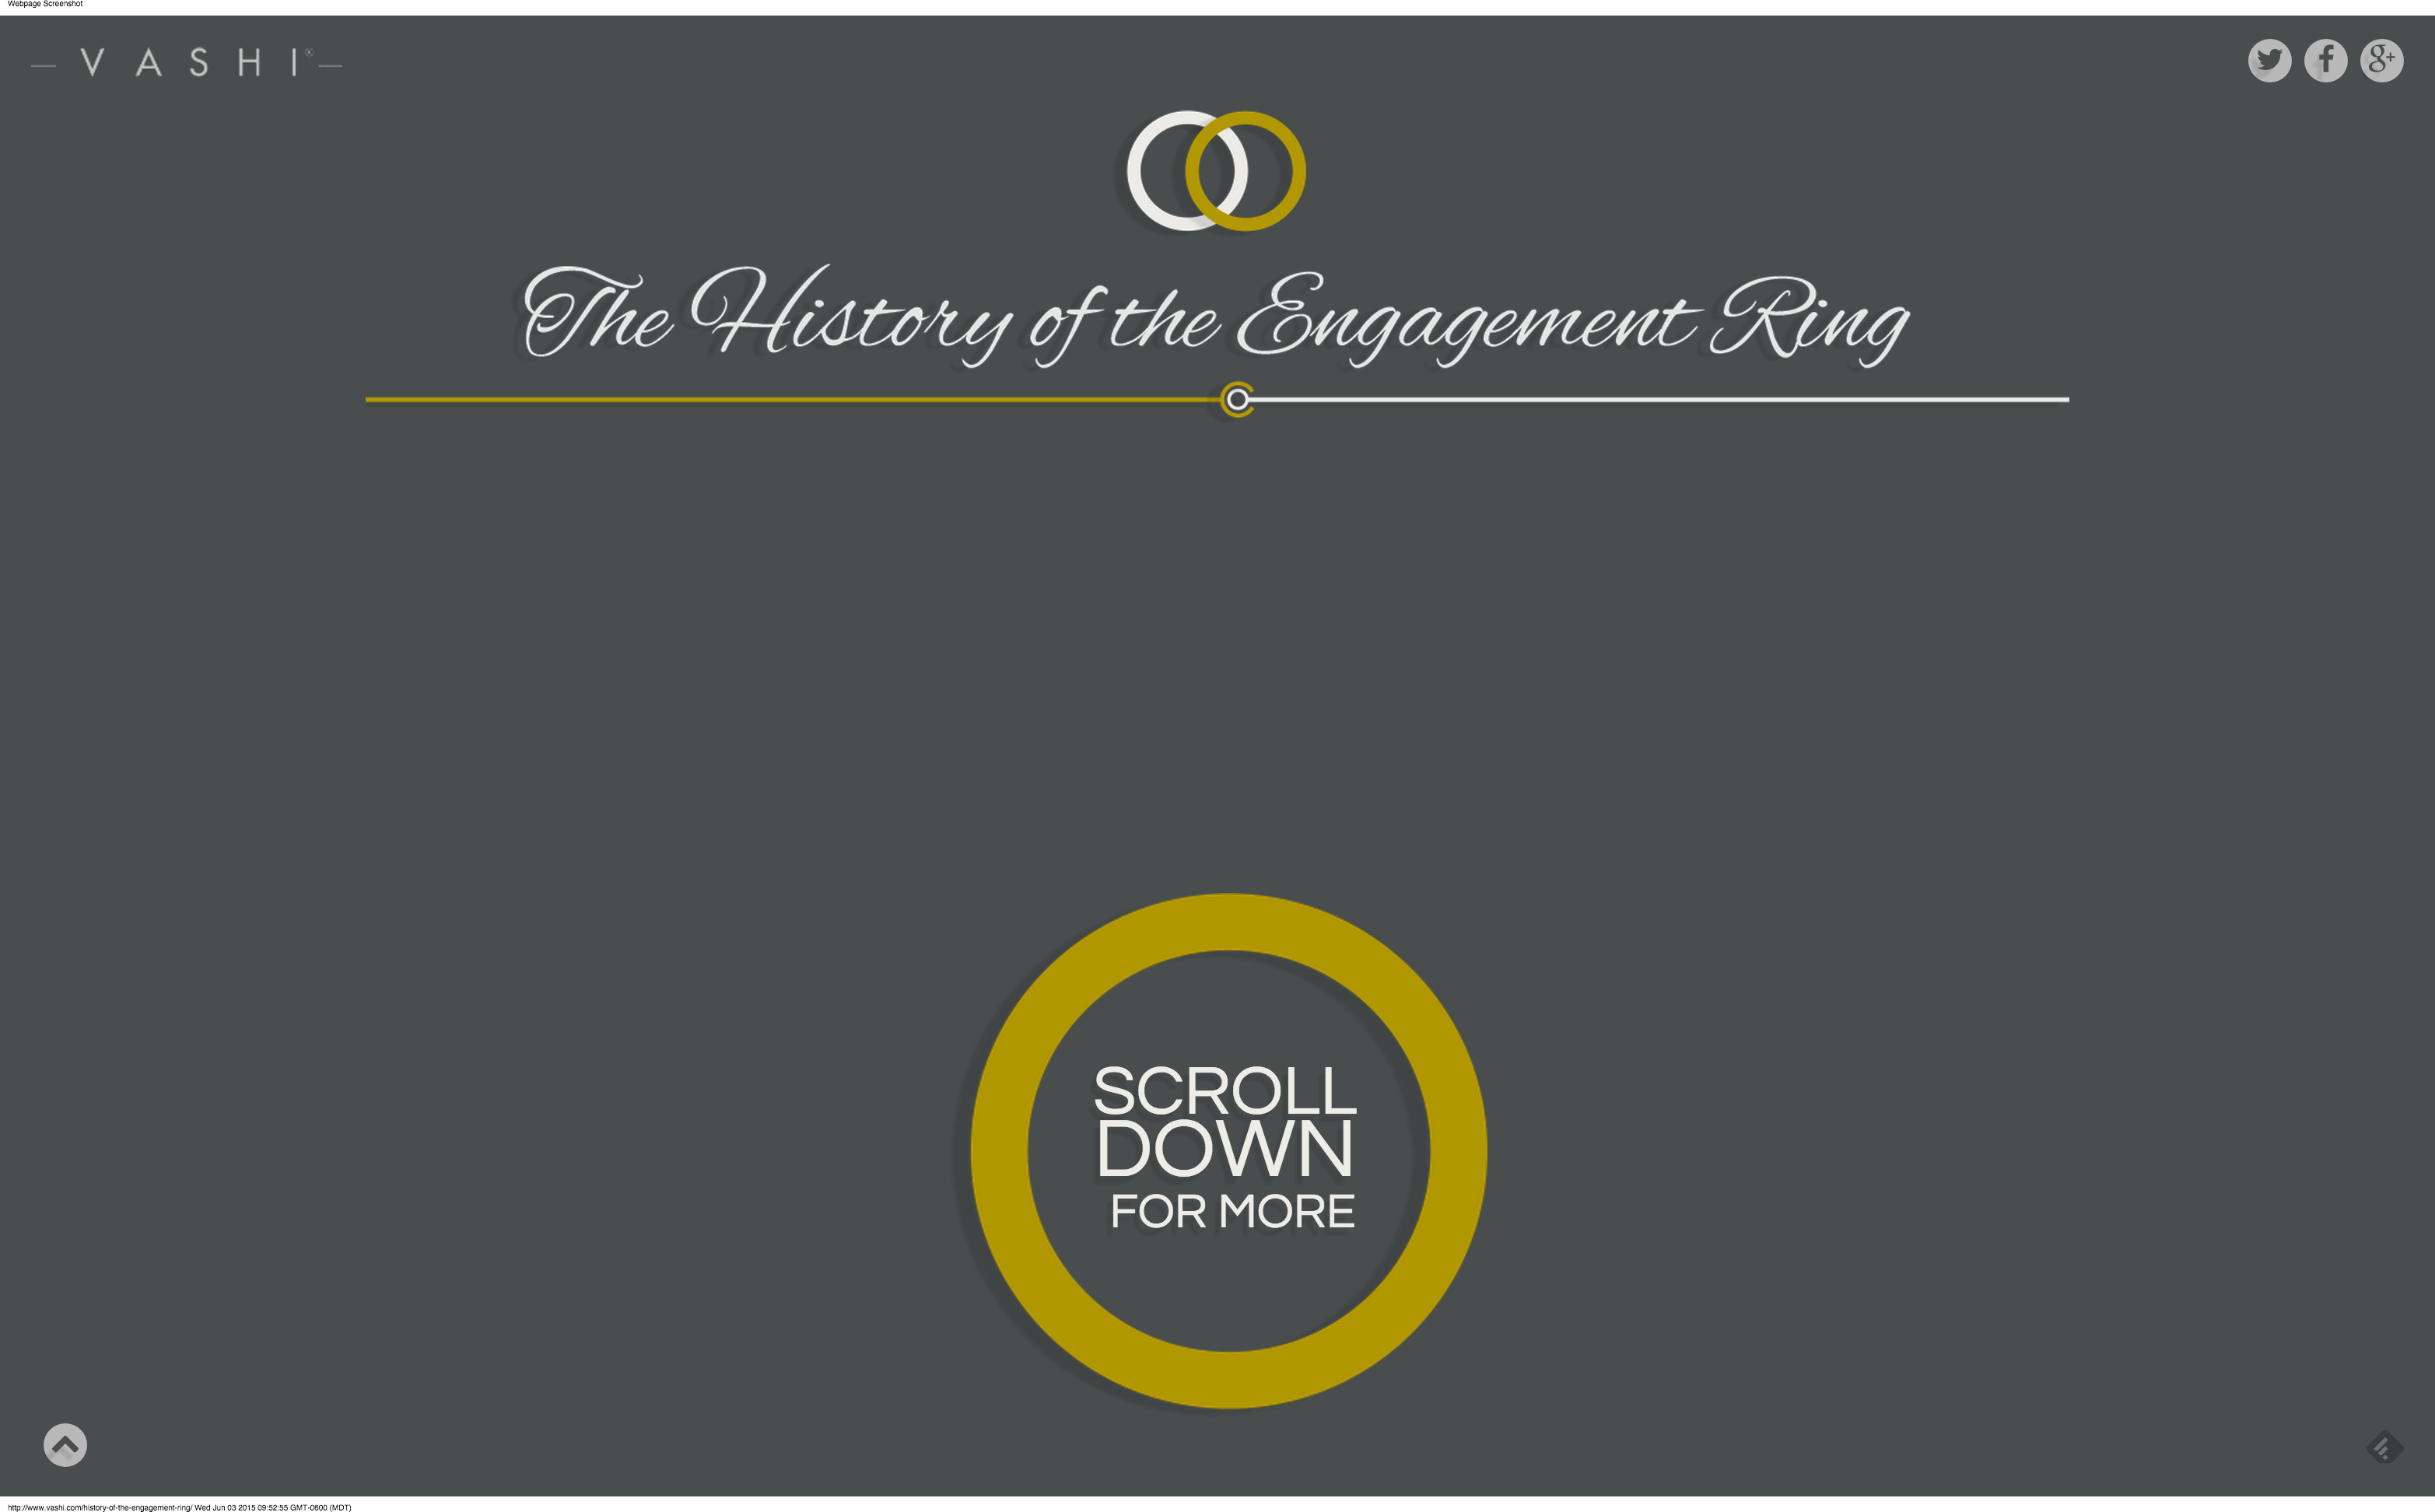 The History of the Engagement Ring - Vashi.com